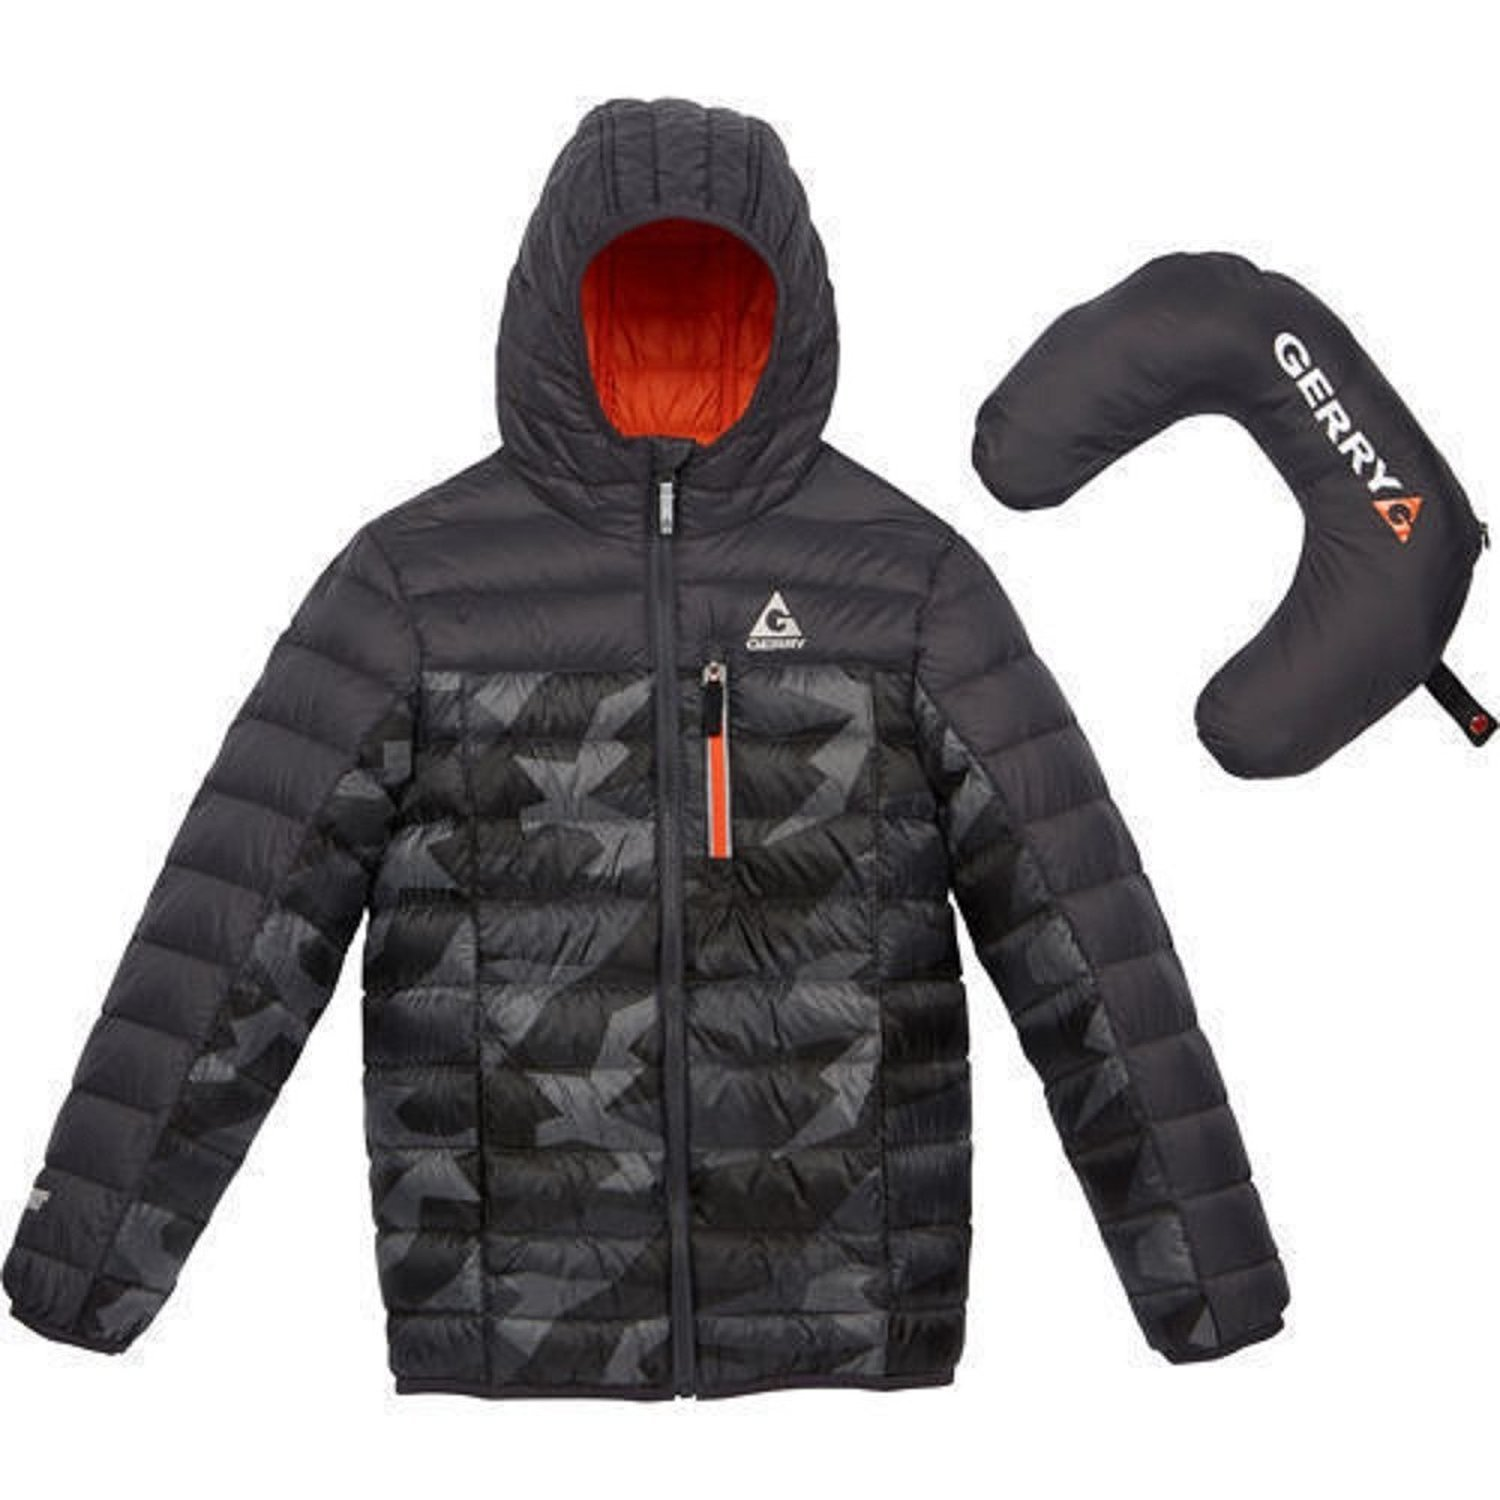 Gerry Boys' Packable Sweater Down Jacket Grey Print XS-6